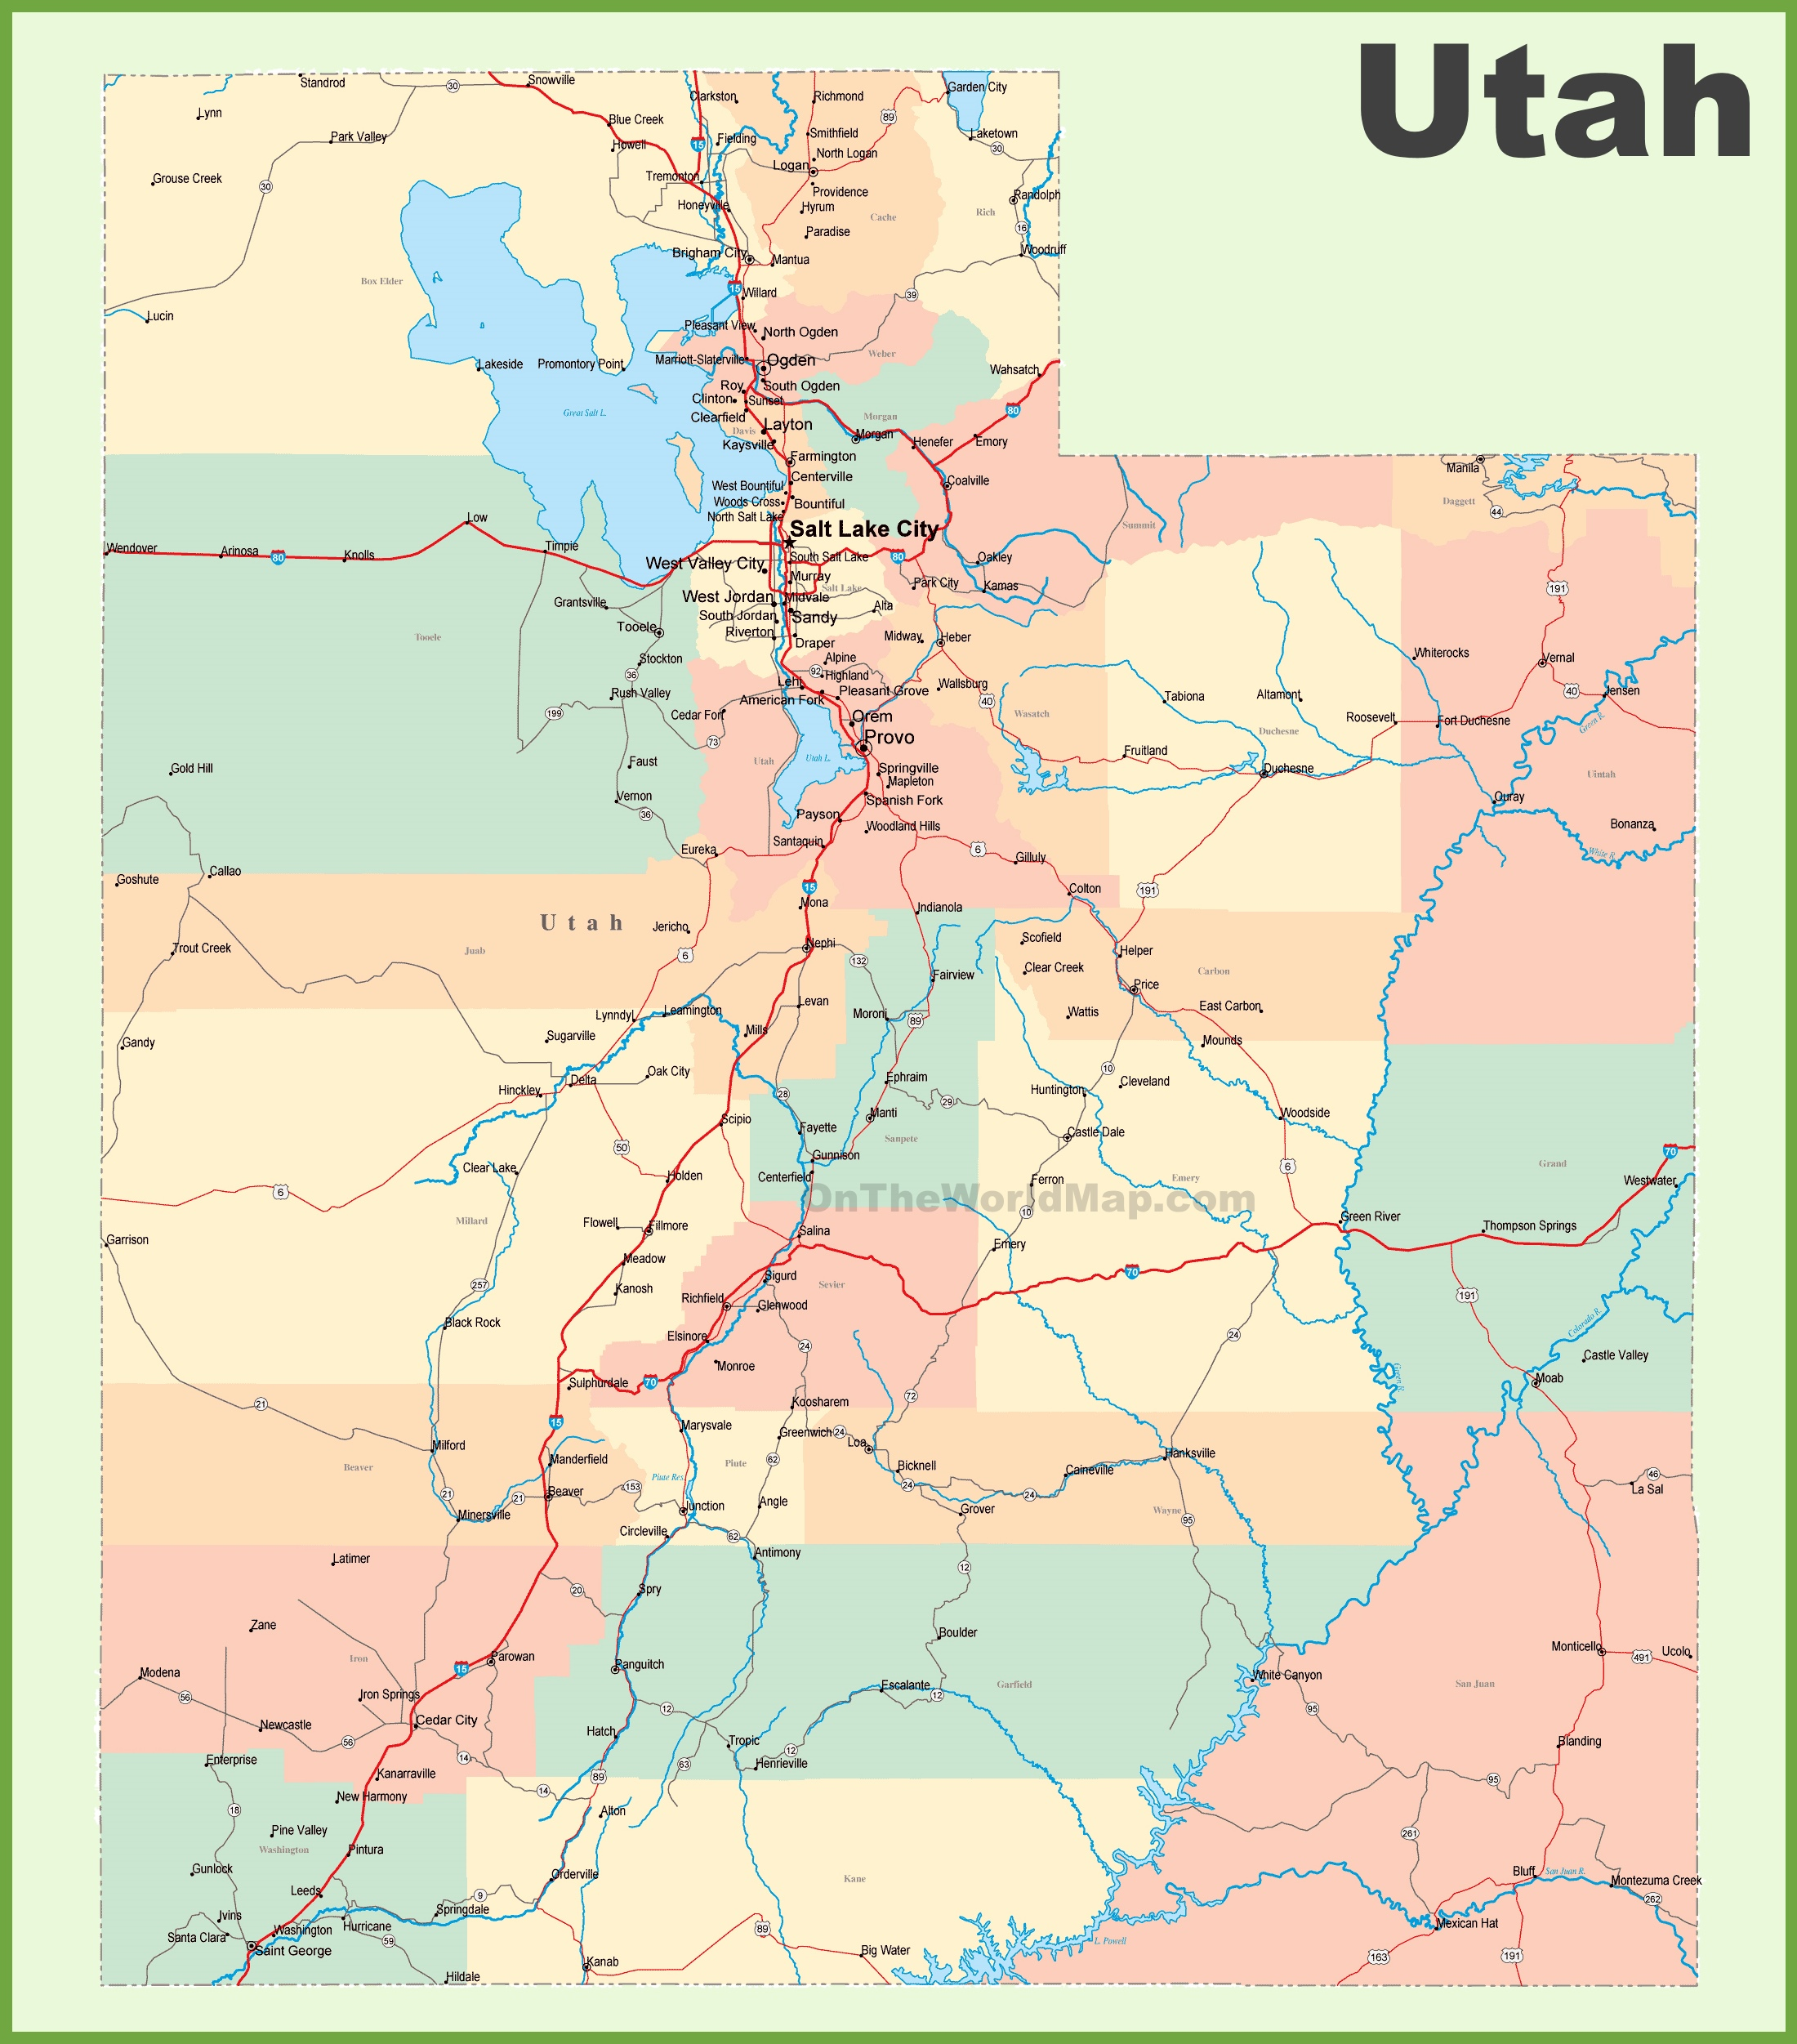 Utah Usa Map Utah State Maps | USA | Maps of Utah (UT)